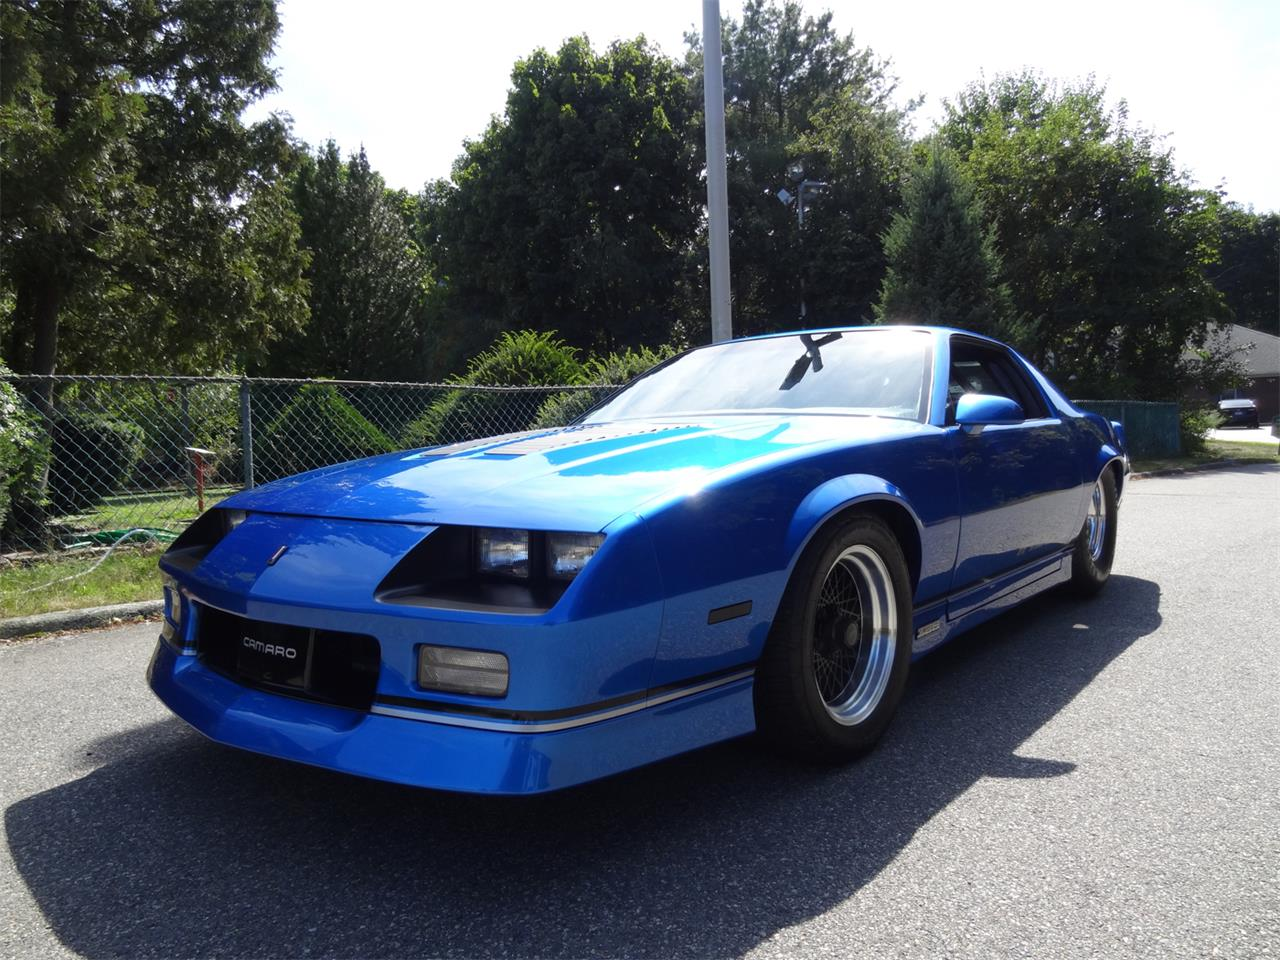 Large Picture of 1983 Camaro IROC Z28 located in Hingham Massachusetts Offered by a Private Seller - QUEA